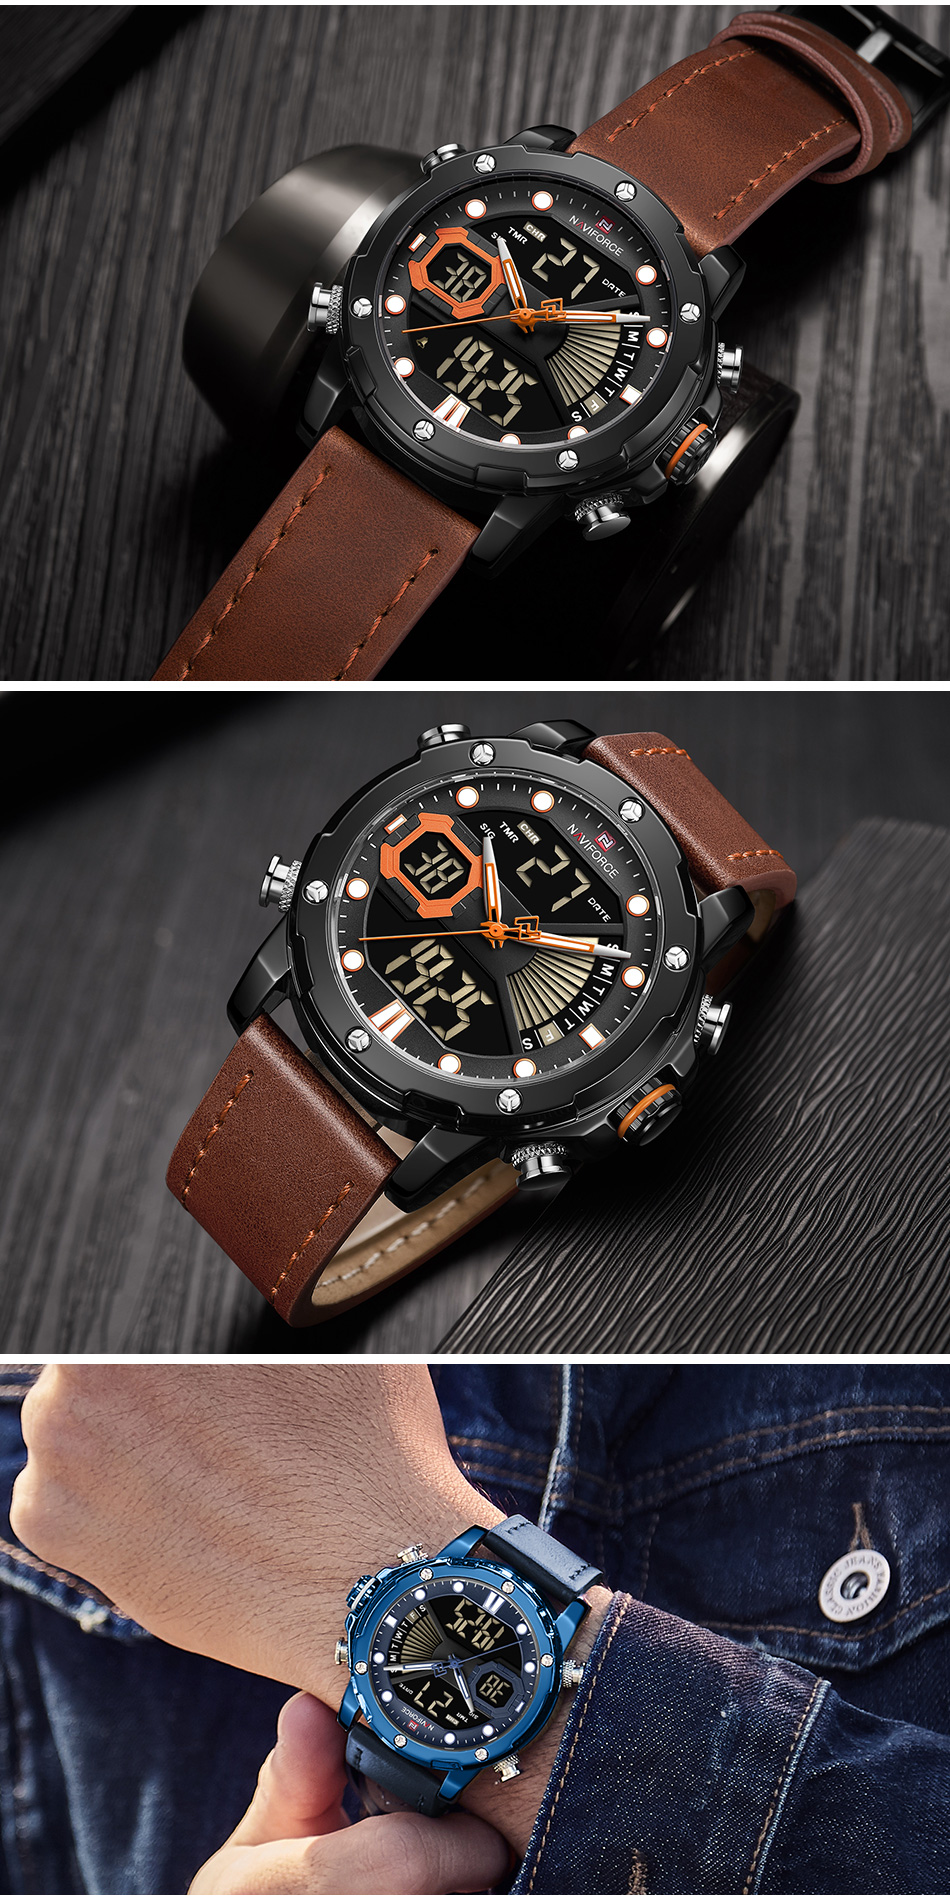 H540990344b6a490ba624586e2c32e990l NAVIFORCE Men Watch Top Luxury Brand Fashion Sports Wristwatch